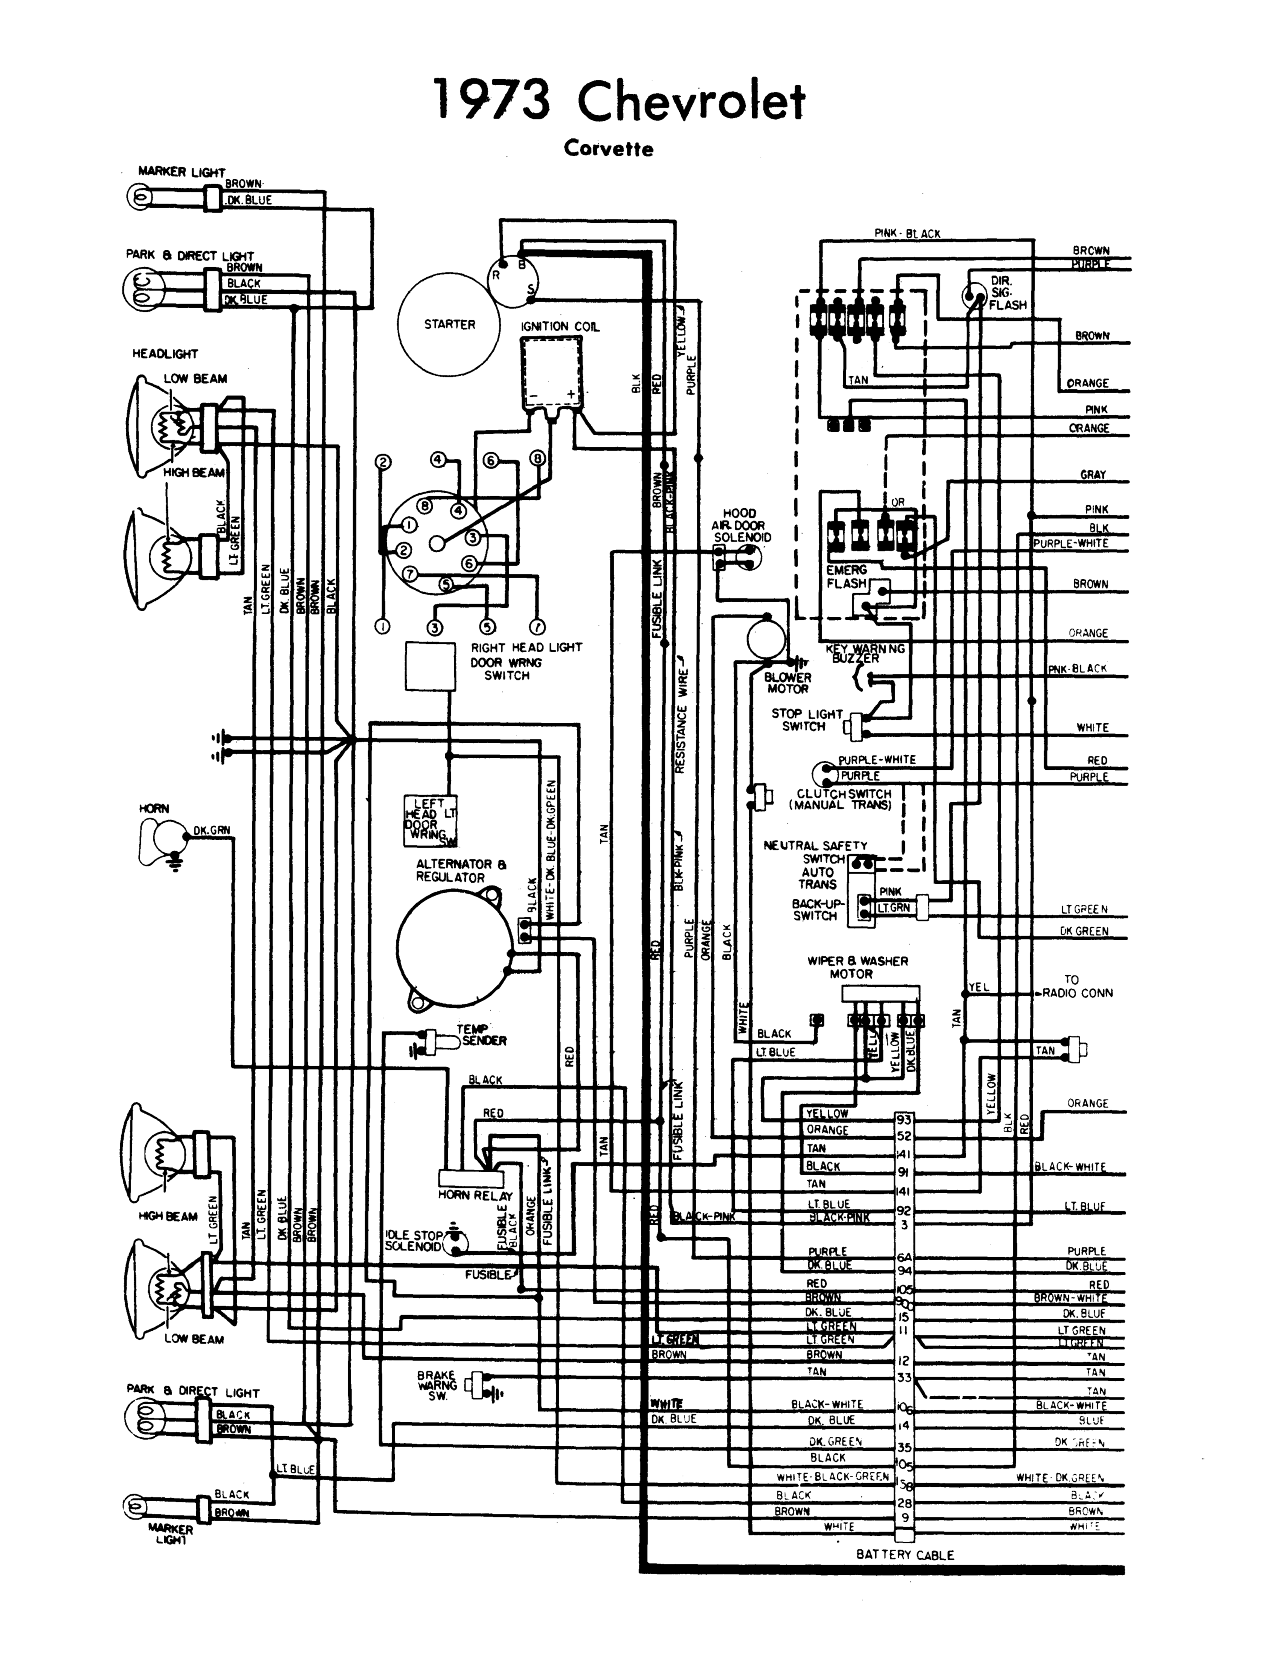 1968 chevrolet corvette wiring diagram all about diagrams wiring diagram 1973 corvette | chevy corvette 1973 wiring ... 1968 chevrolet c10 wiring diagram